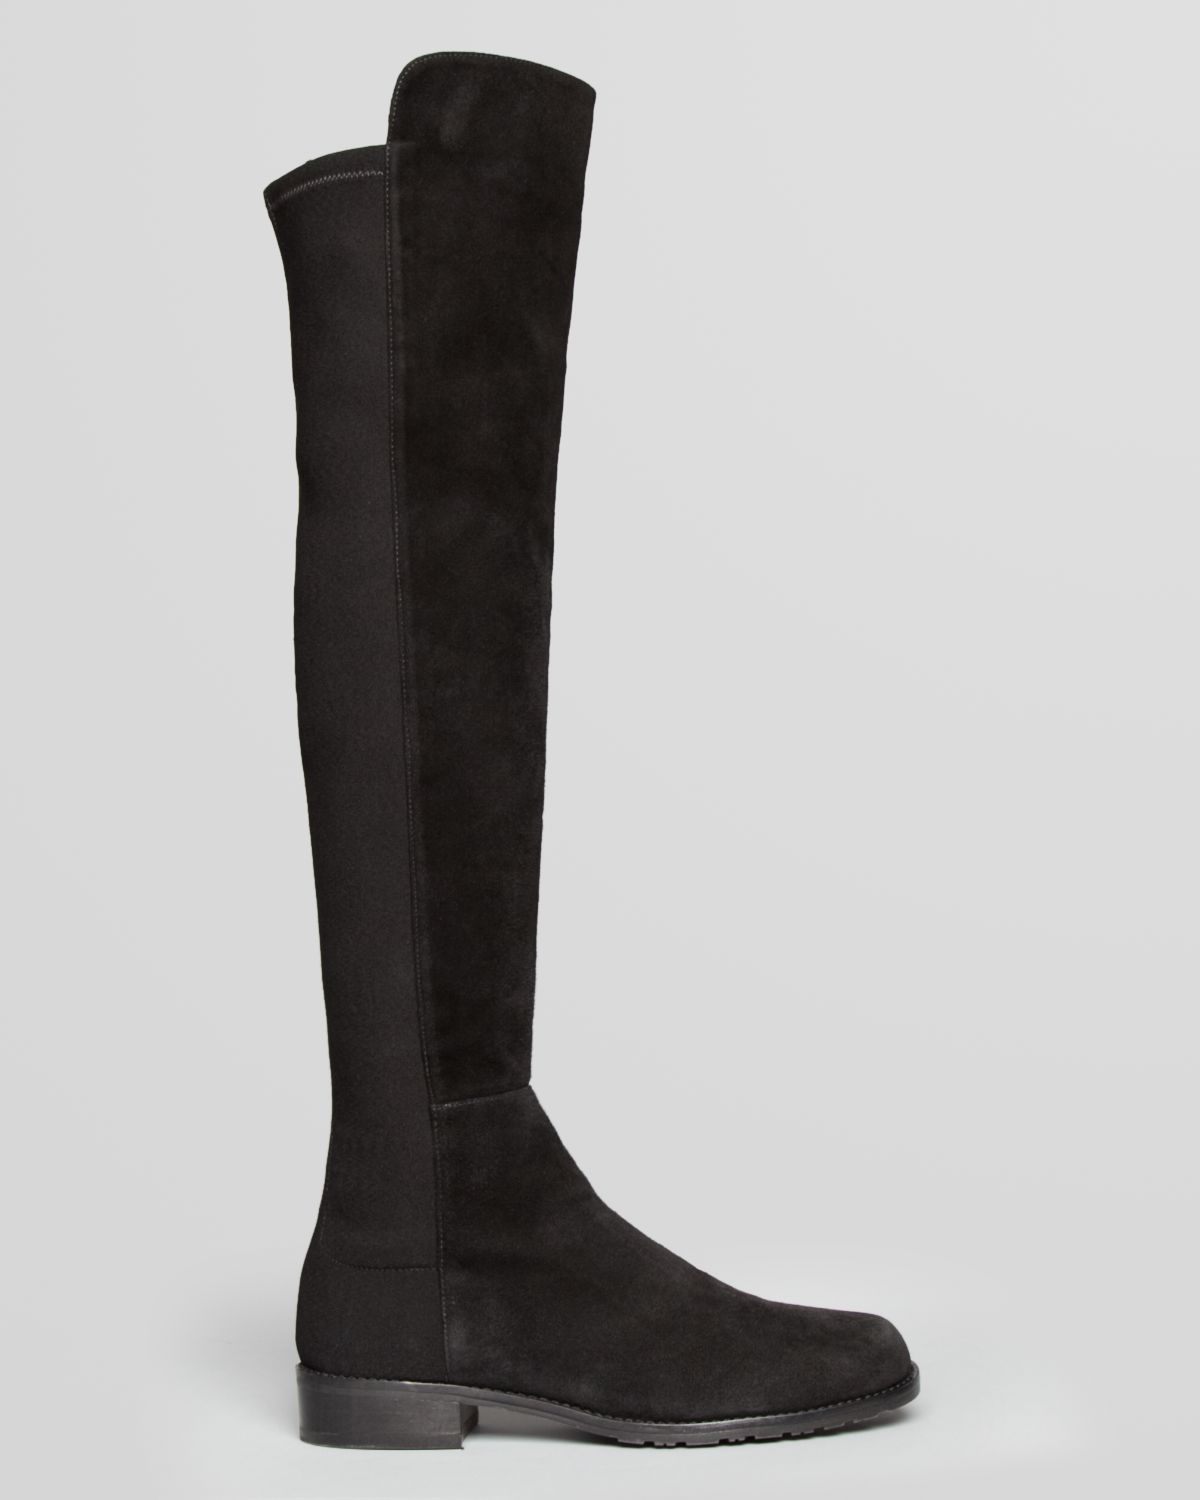 Stuart weitzman Over The Knee Boots - 5050 Stretch Suede in Black ...